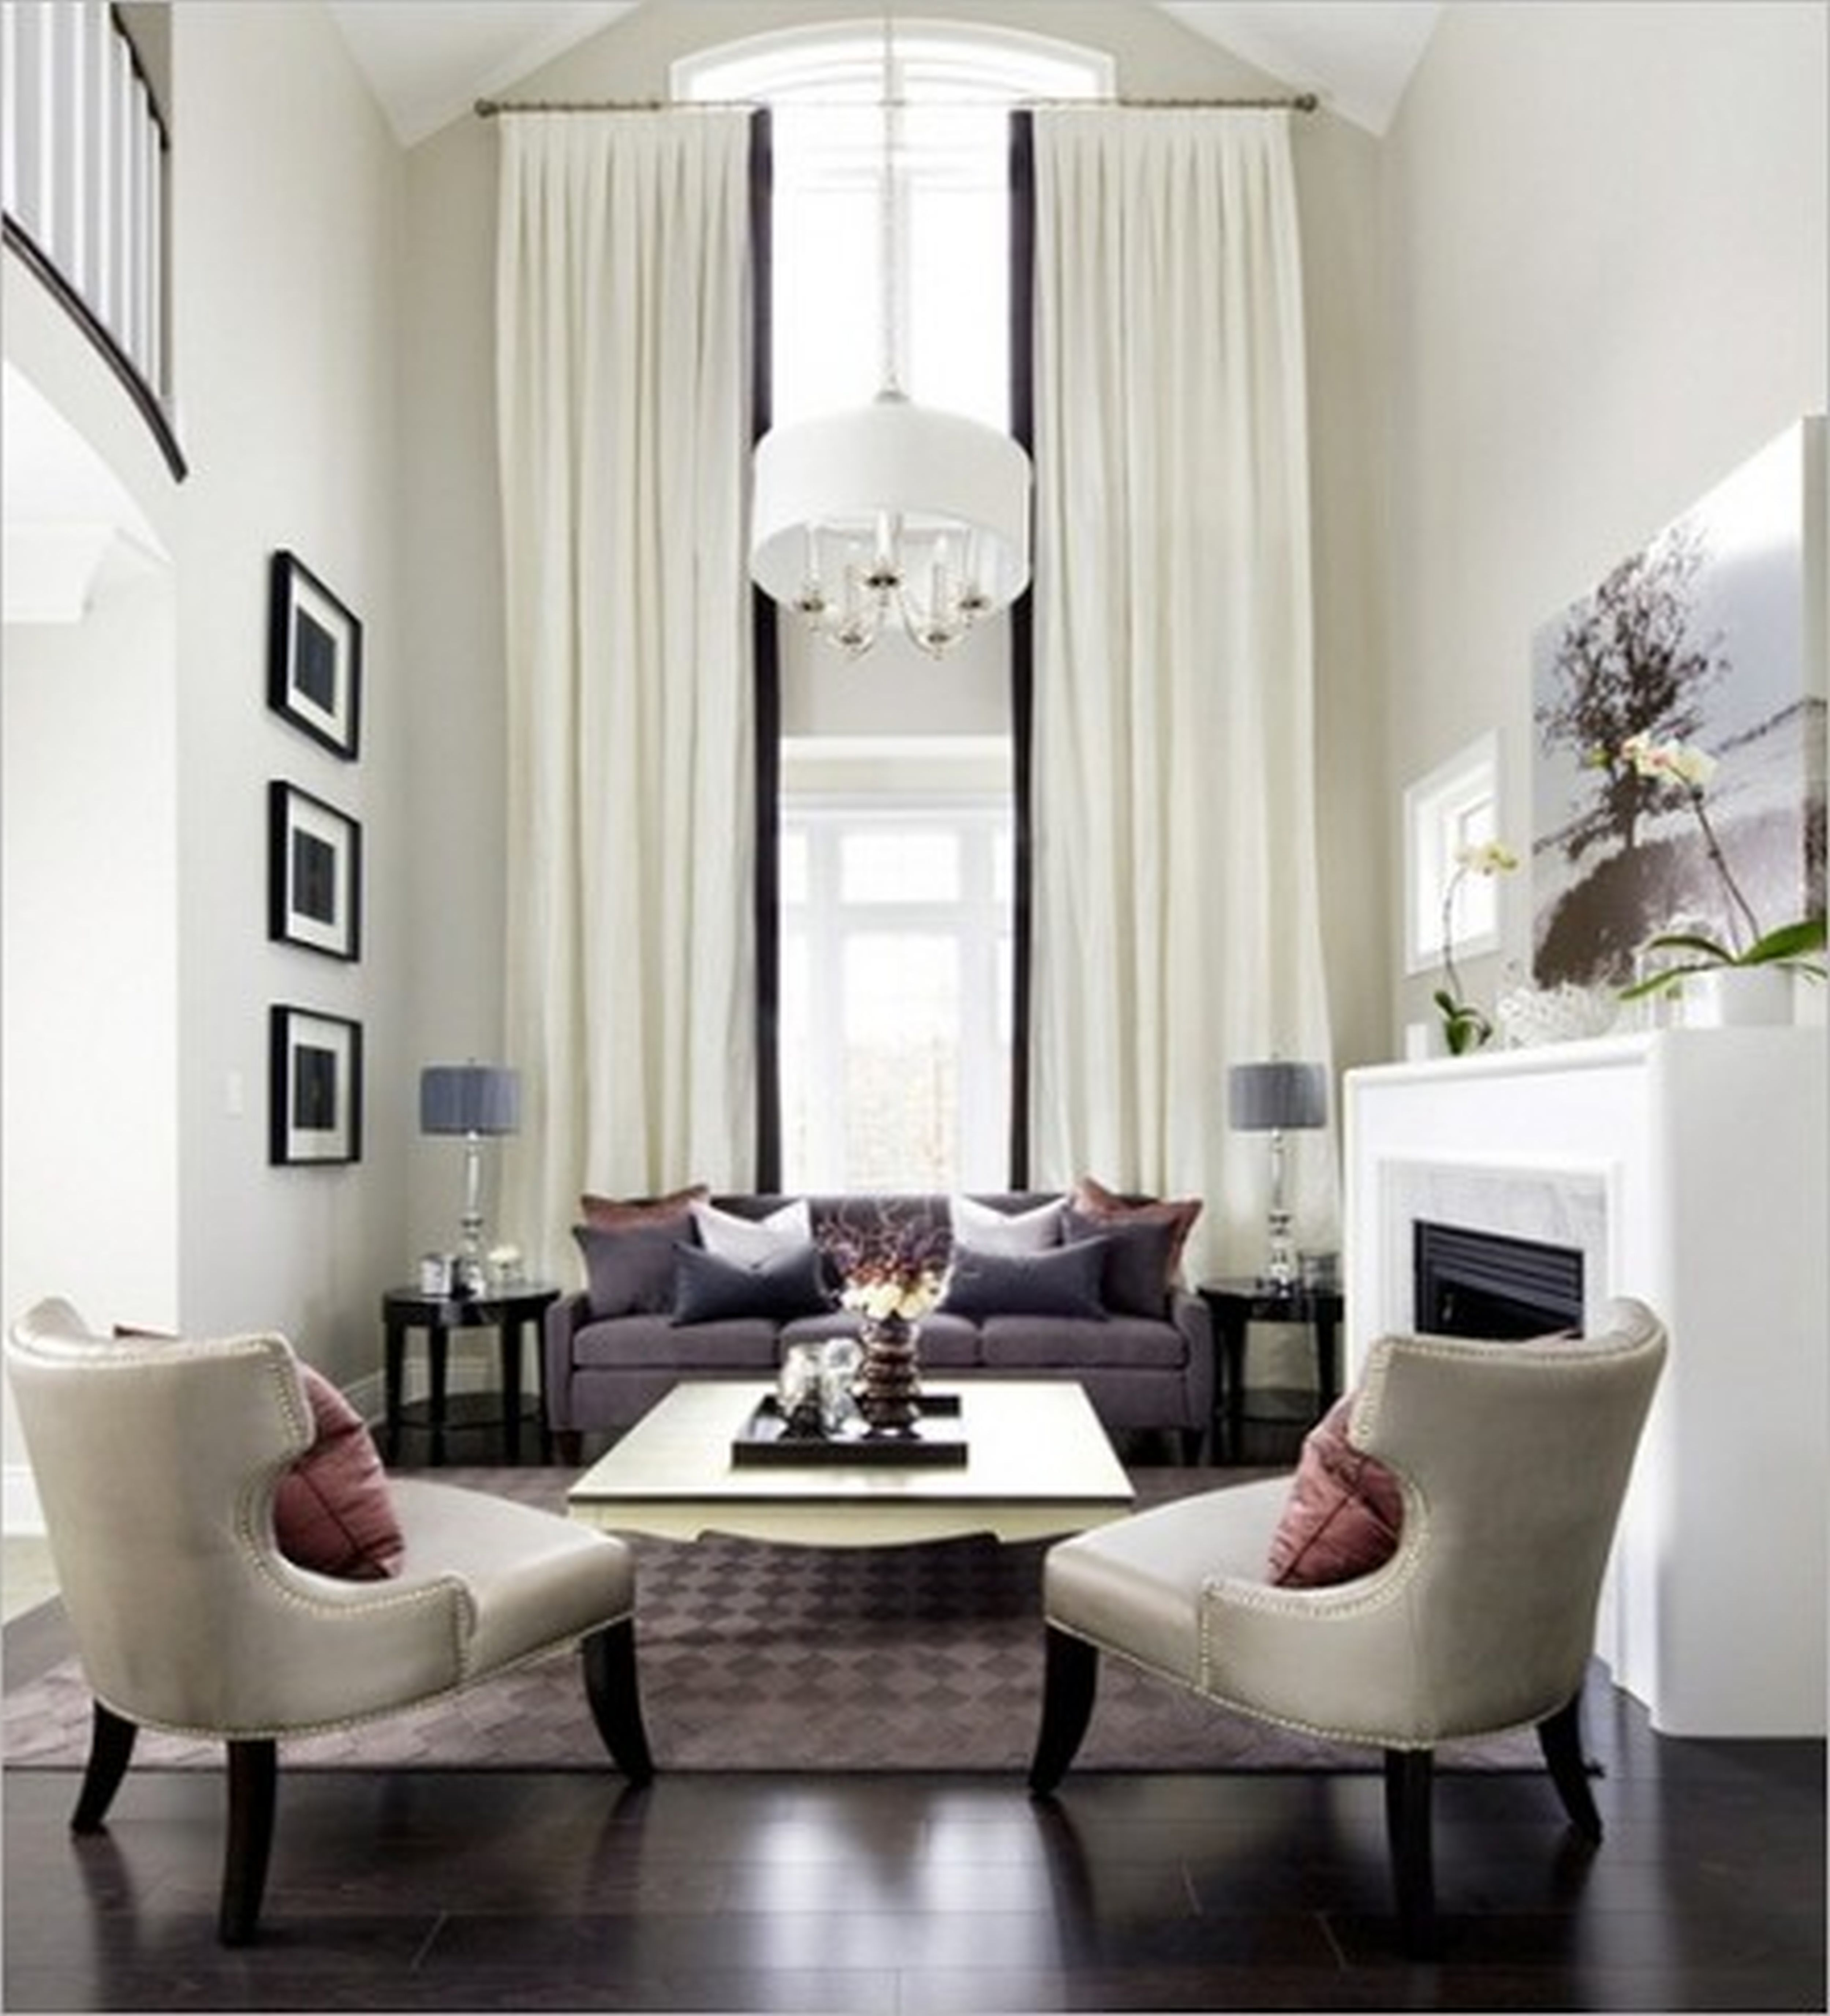 17 Best images about Home Ideas: Living Room on Pinterest ...